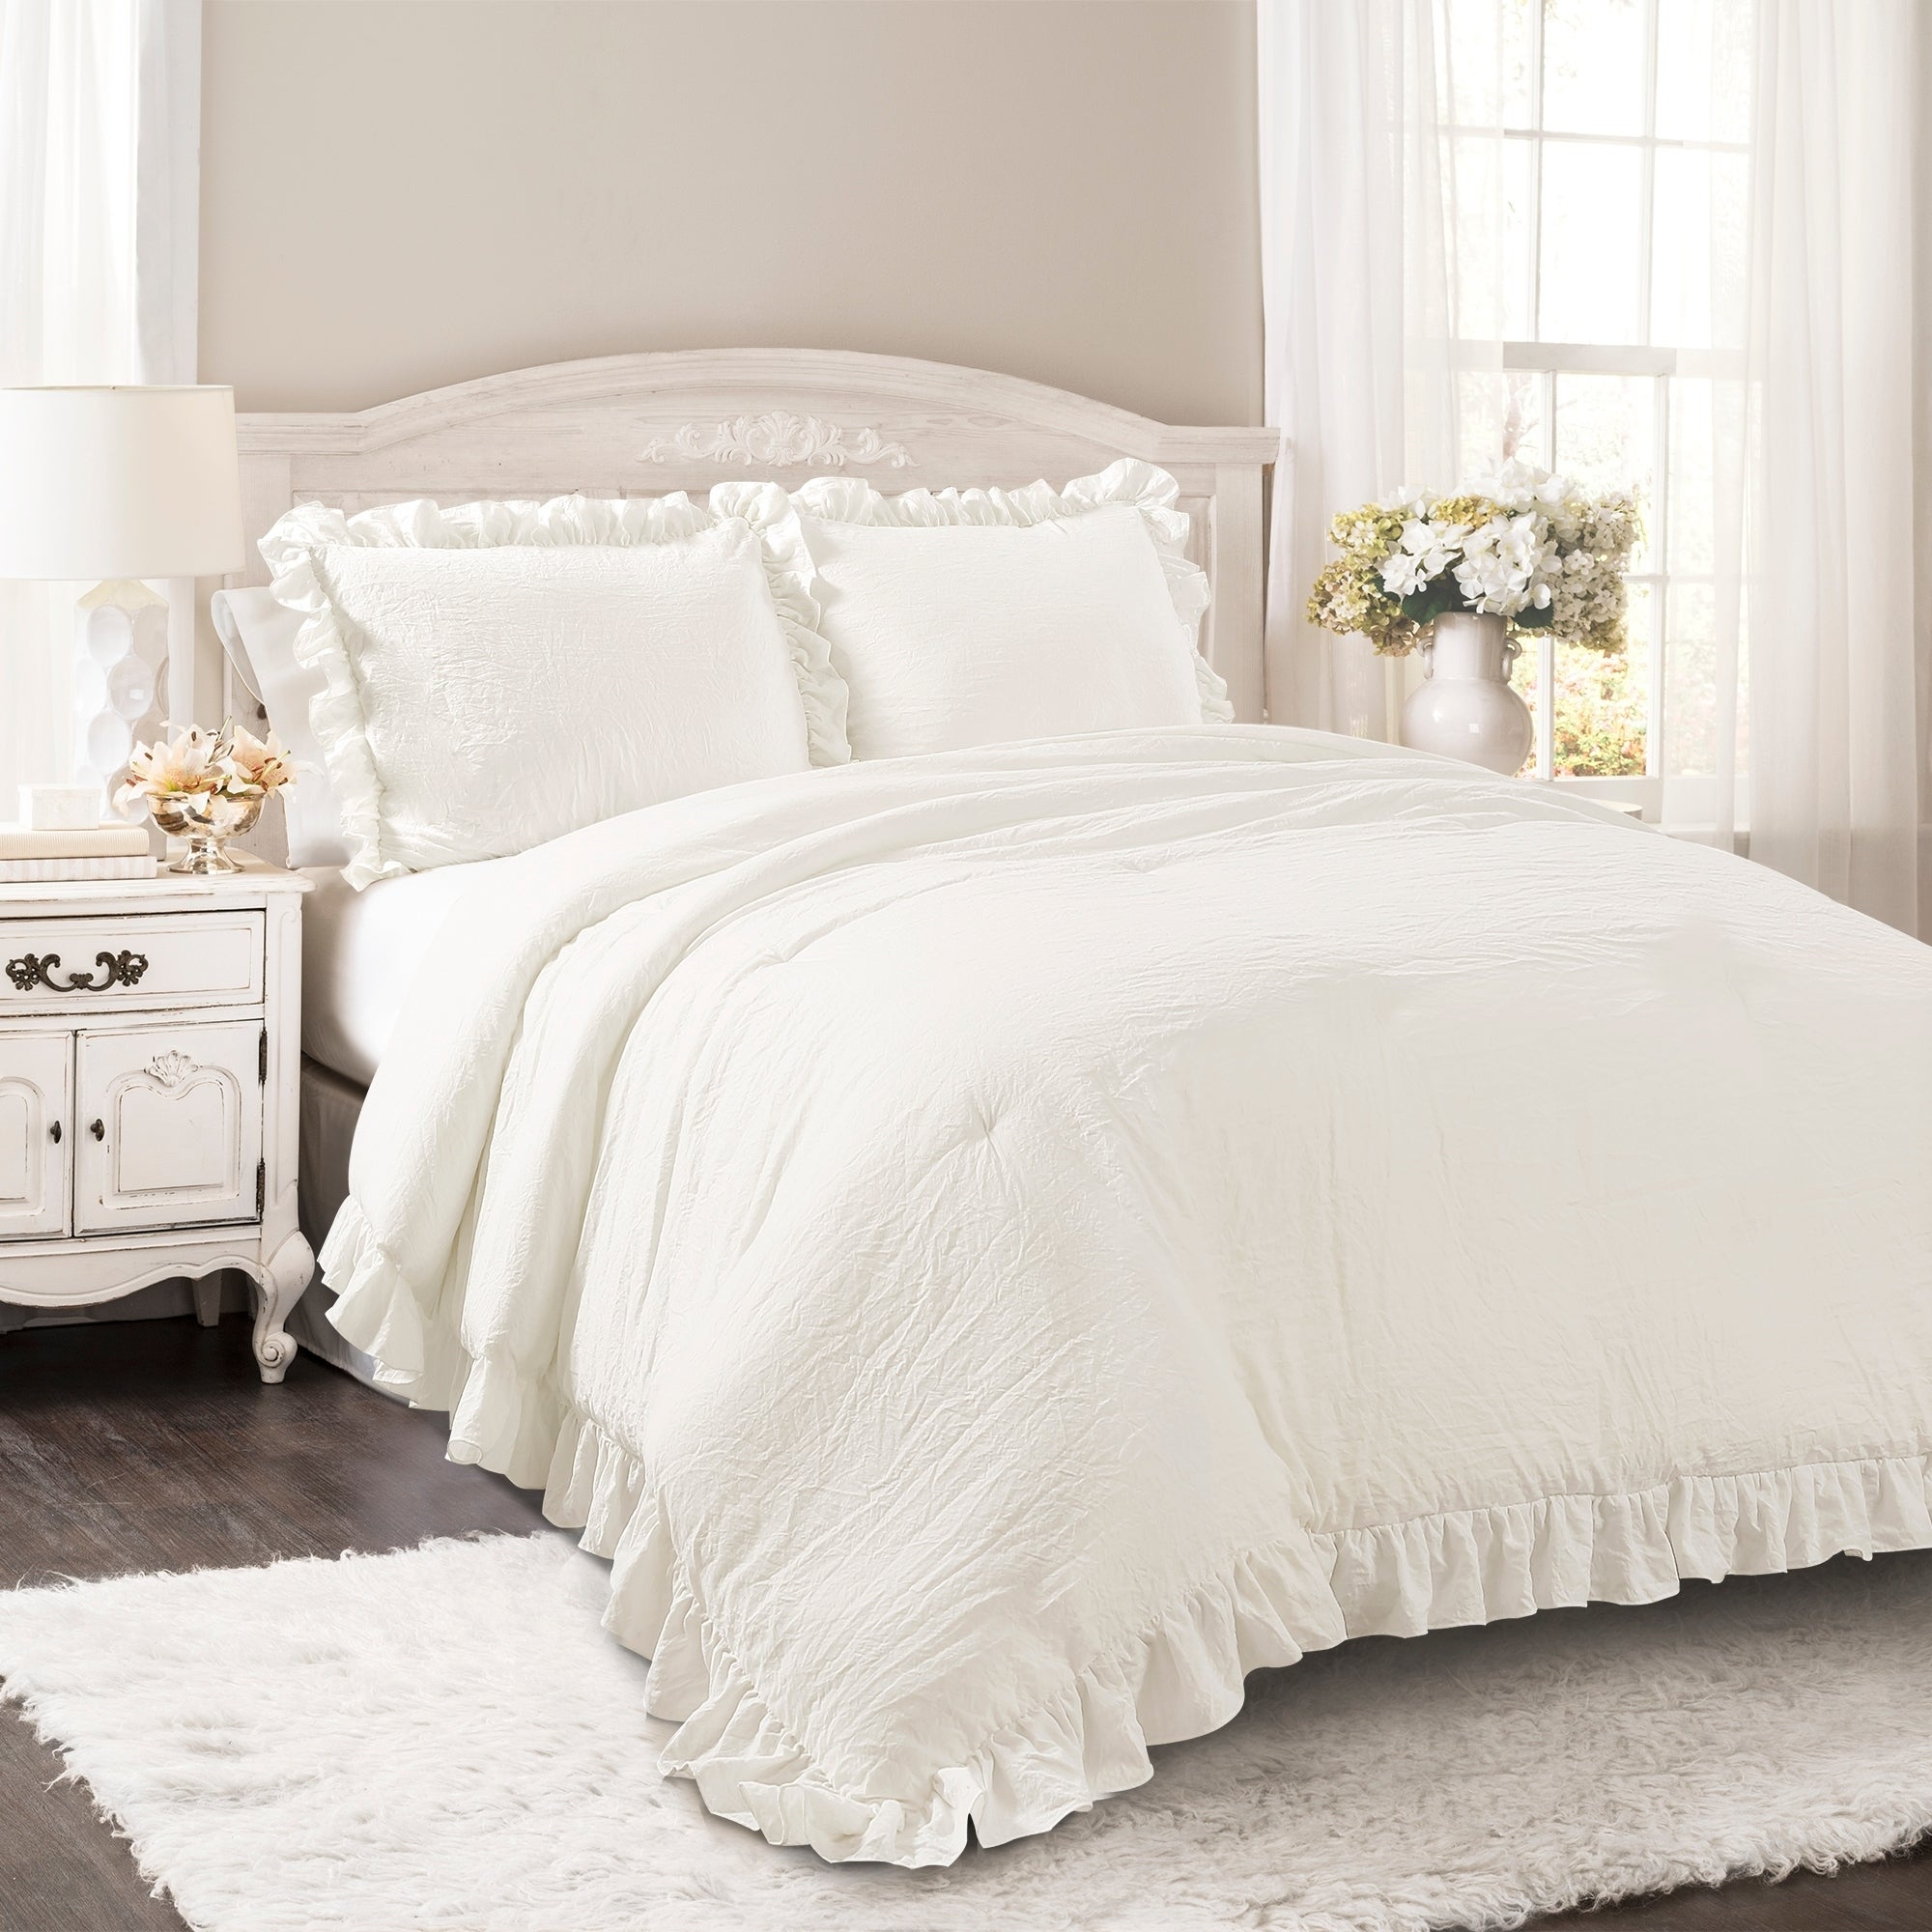 bed queen at pin orders bedding your on fashion com free shipping overstock over